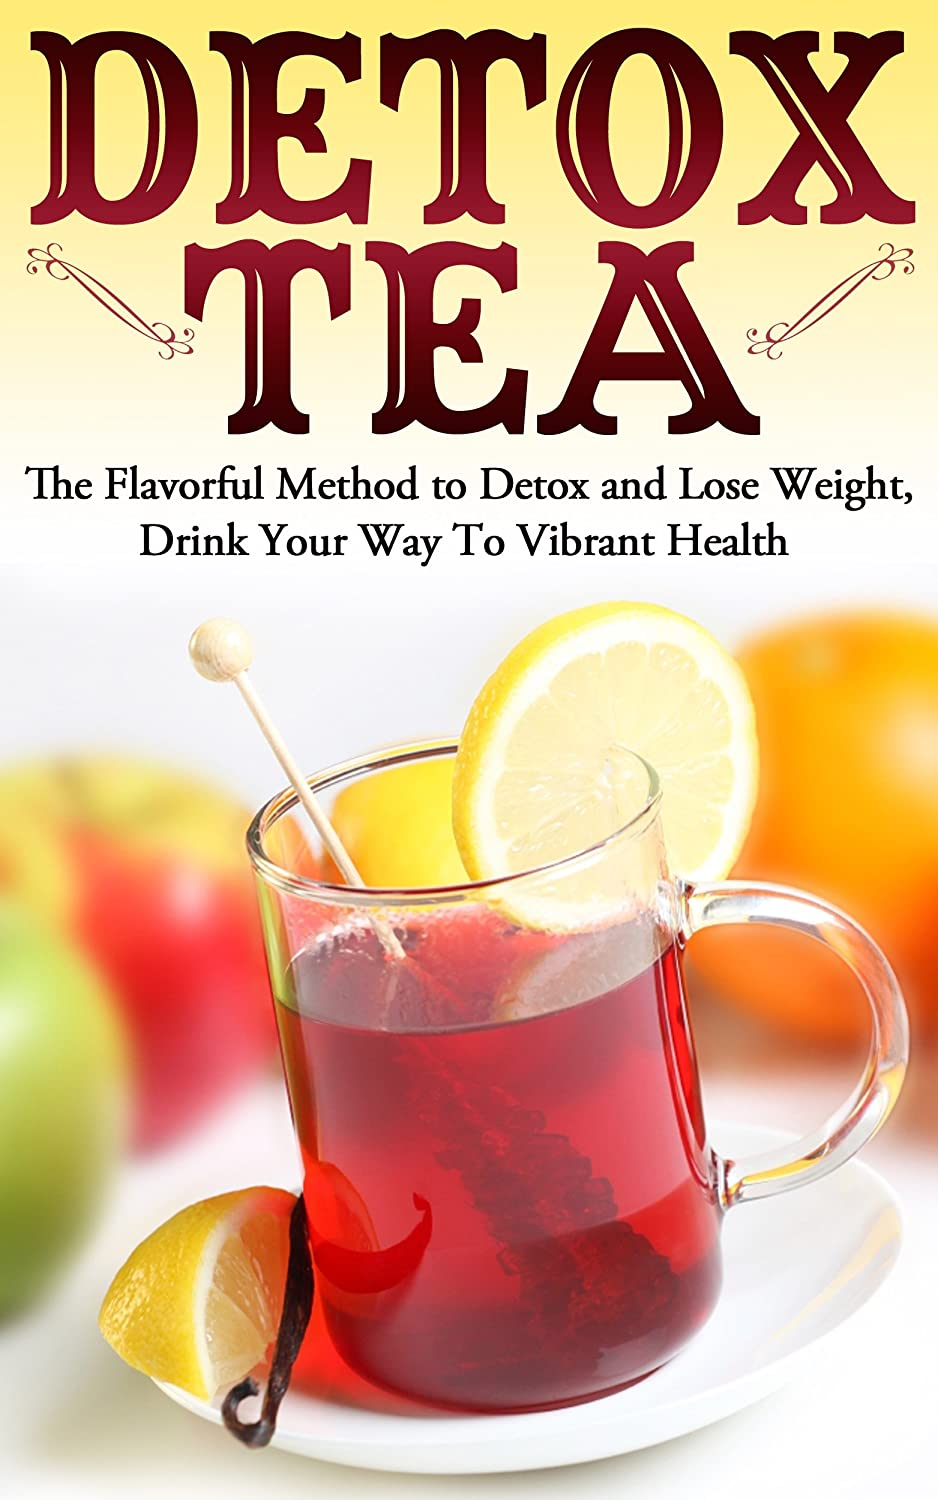 http://www.amazon.com/Detox-Tea-Flavorful-Vibrant-Detoxify-ebook/dp/B00ITTVDT6